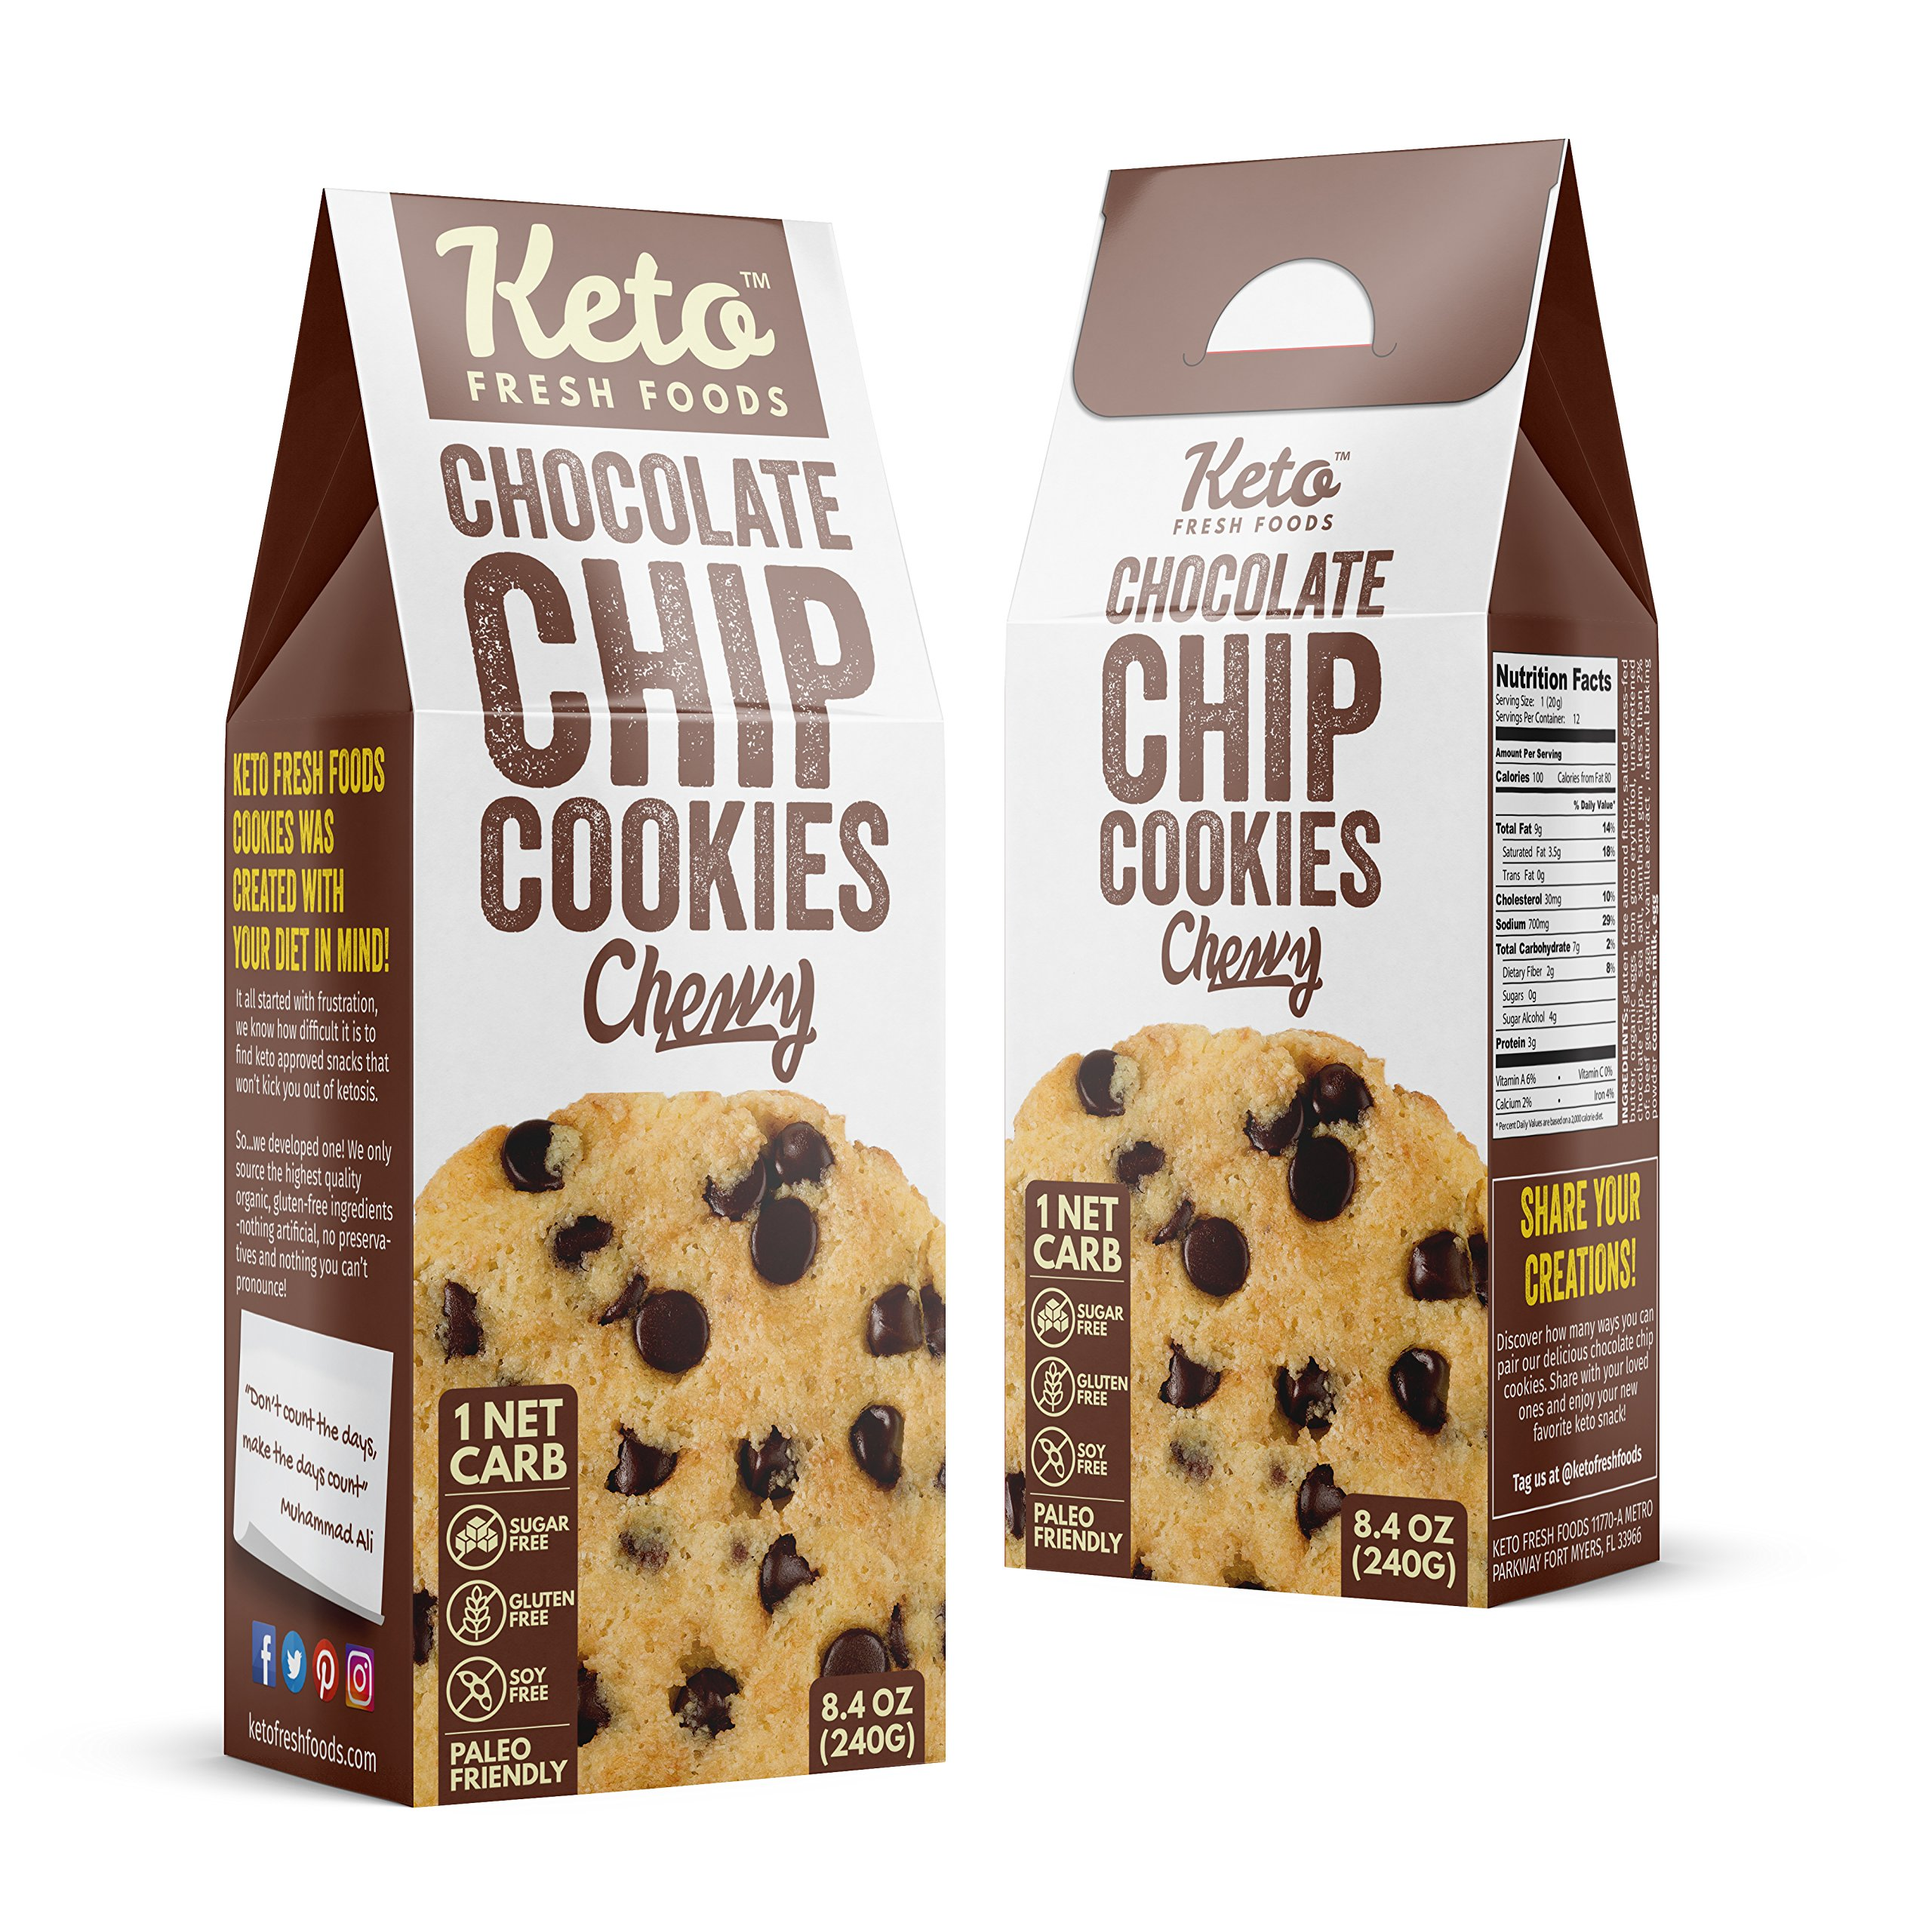 Keto Fresh Foods Chocolate Chip Cookies Features: 1 NET Carb | Sugar Free | Gluten Free | Made with Organic & Natural Ingredients | Paleo & Grandma Approved (12 Count) by Keto Fresh Foods